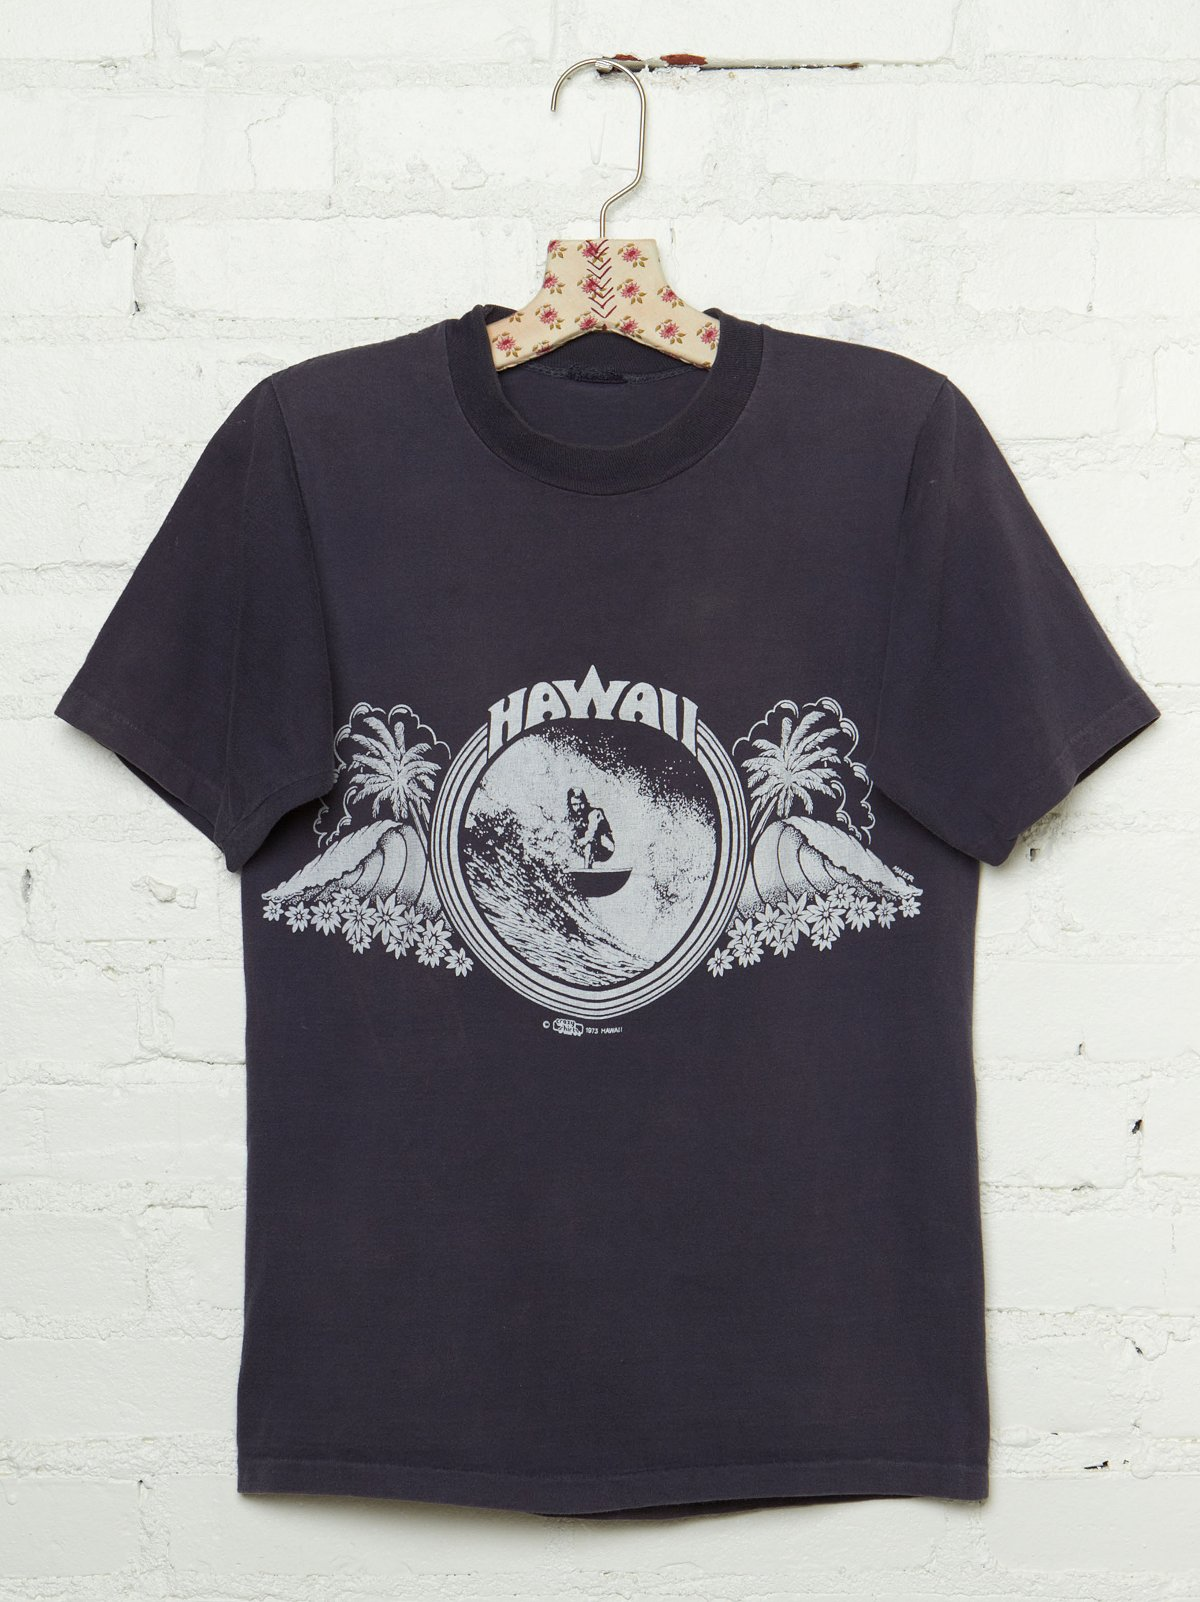 Vintage 1970s Hawaii Graphic Tee